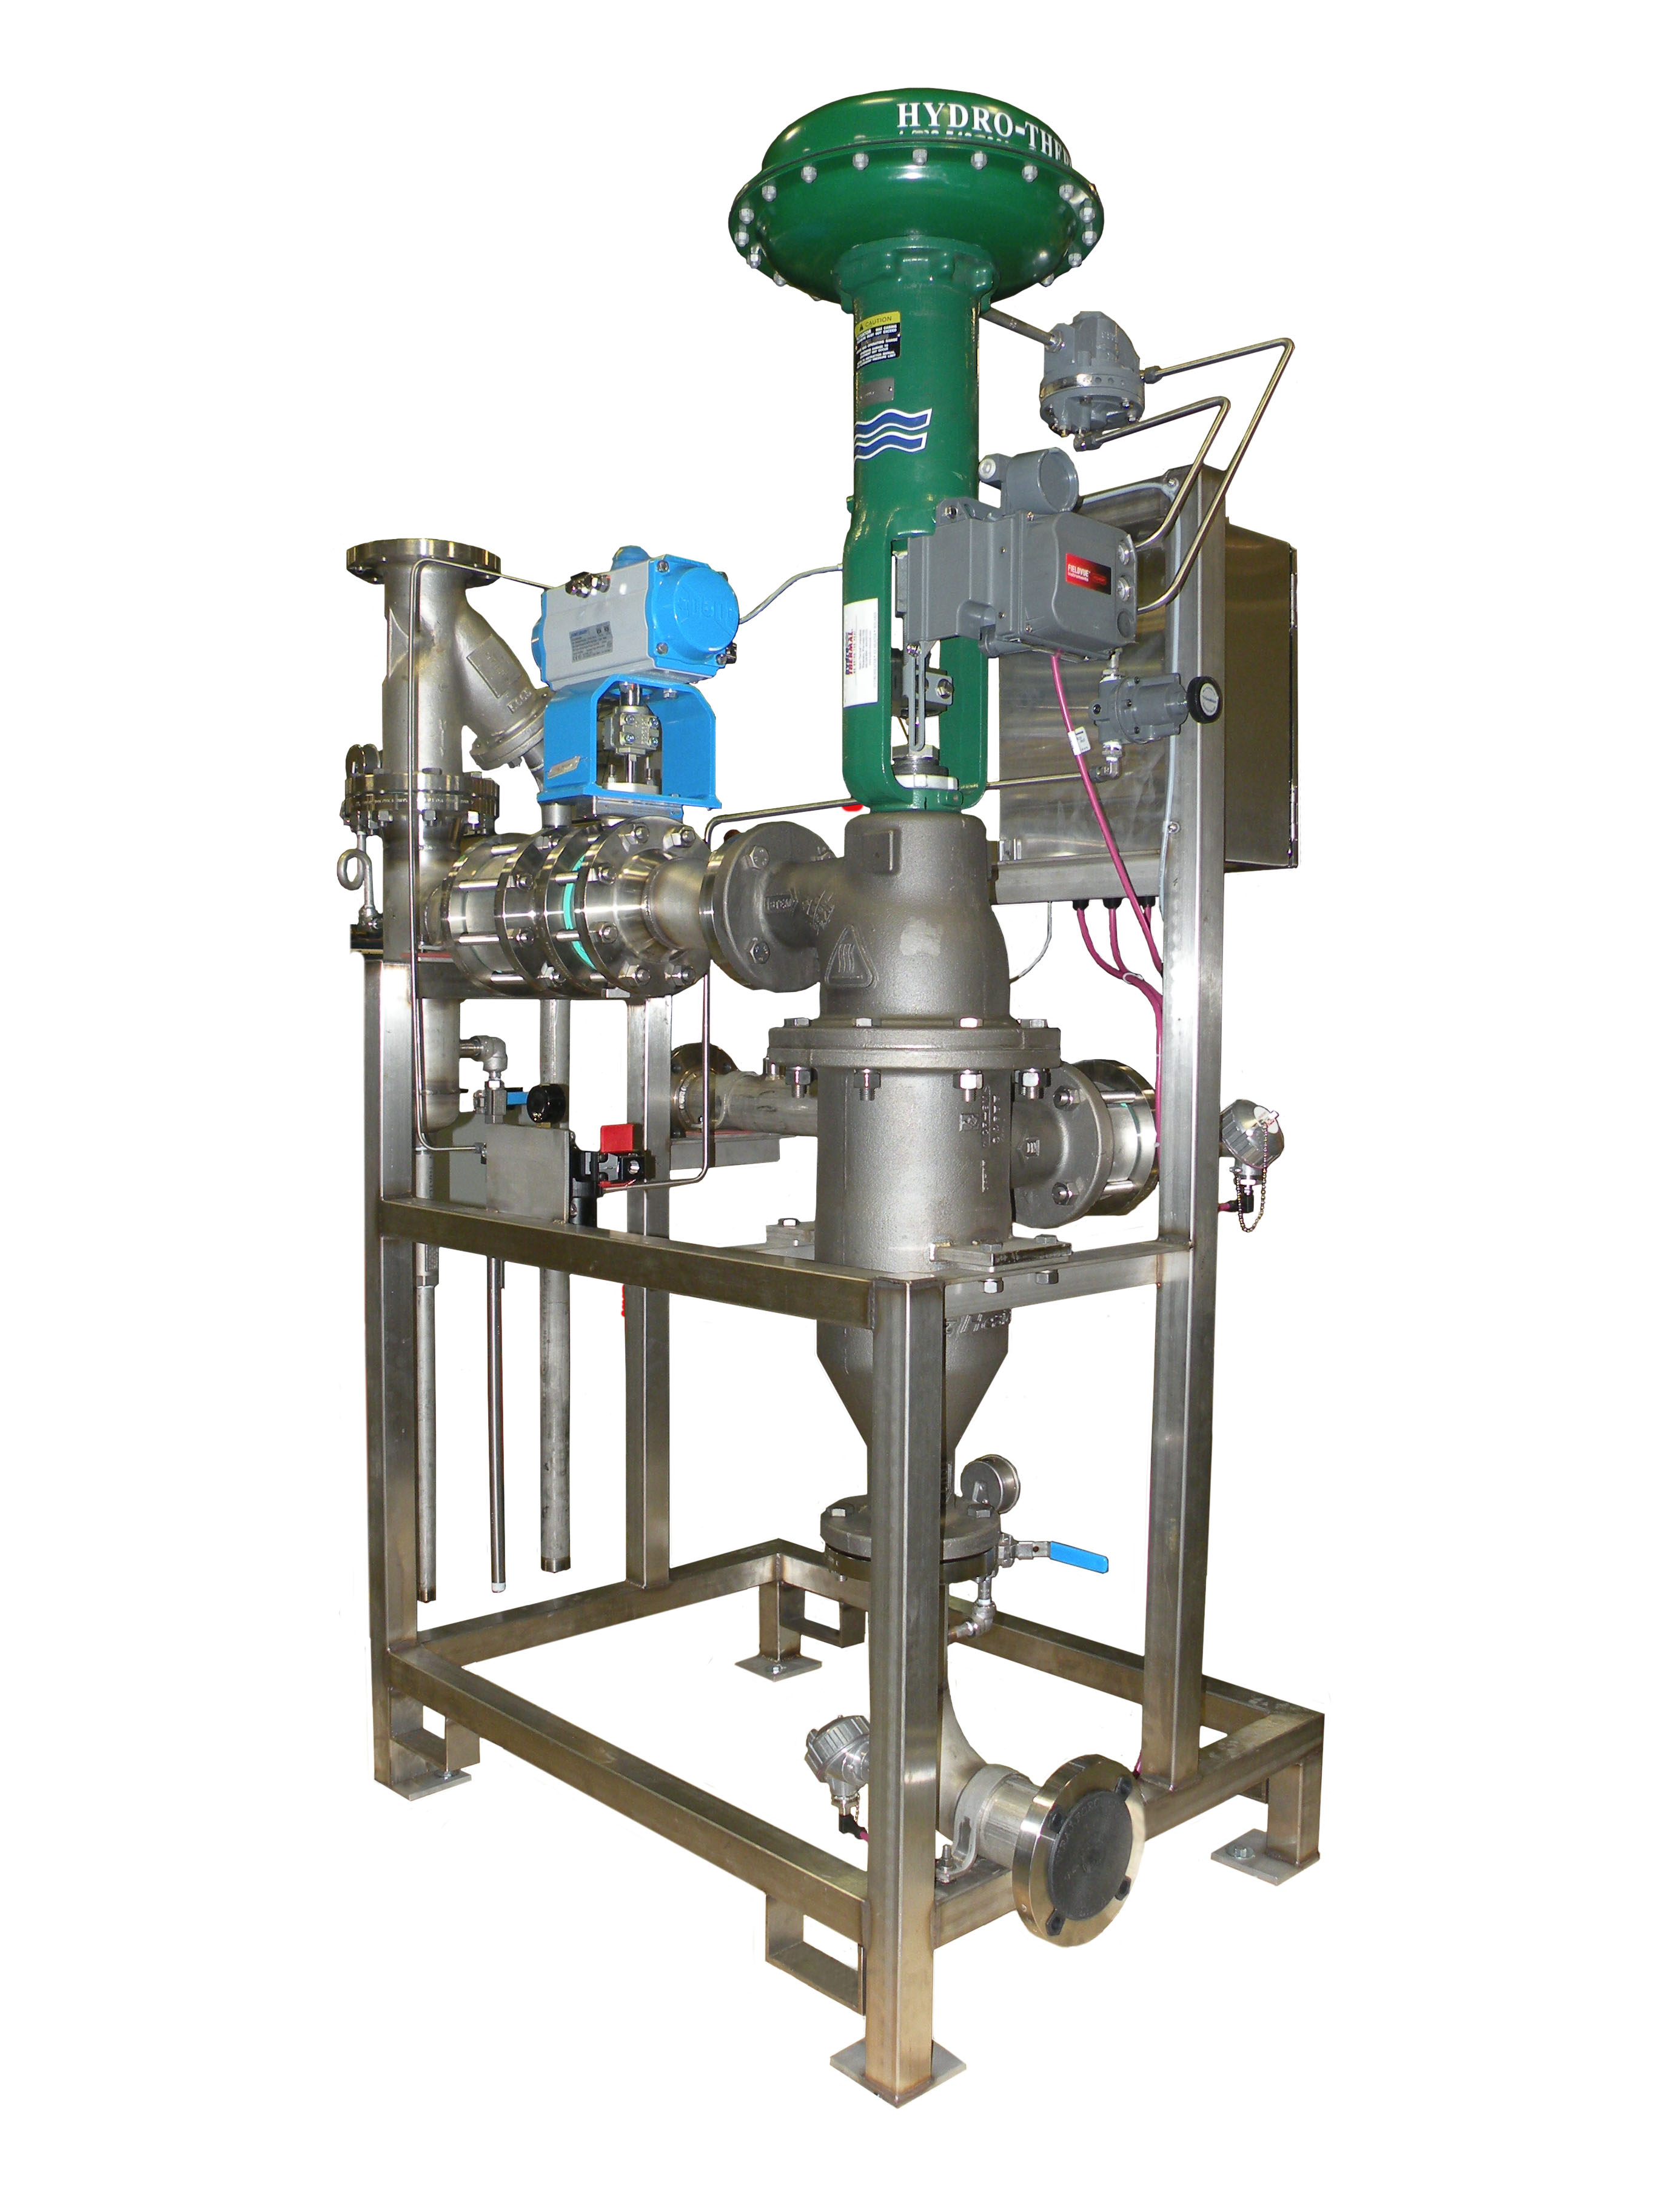 EZ Skid - Hot water on demand